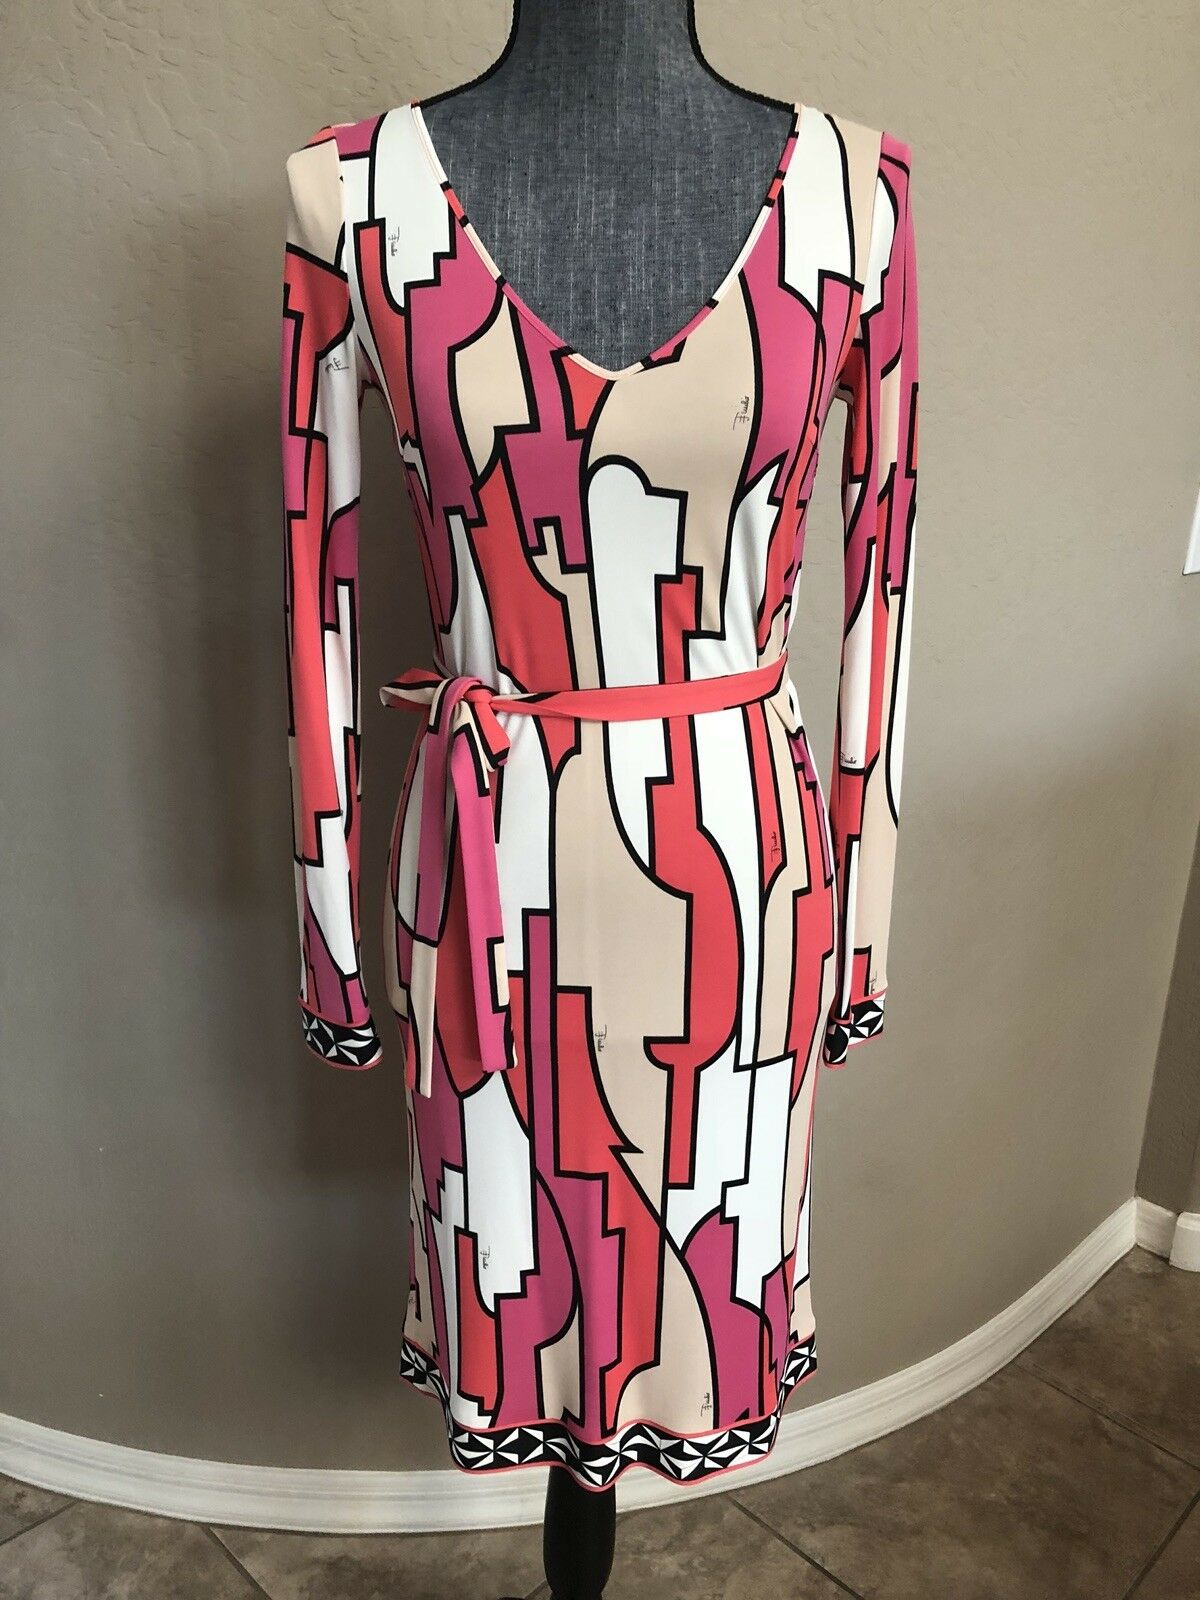 EMILIO PUCCI Pink White Women's Dress Size 40 Or 6 Small